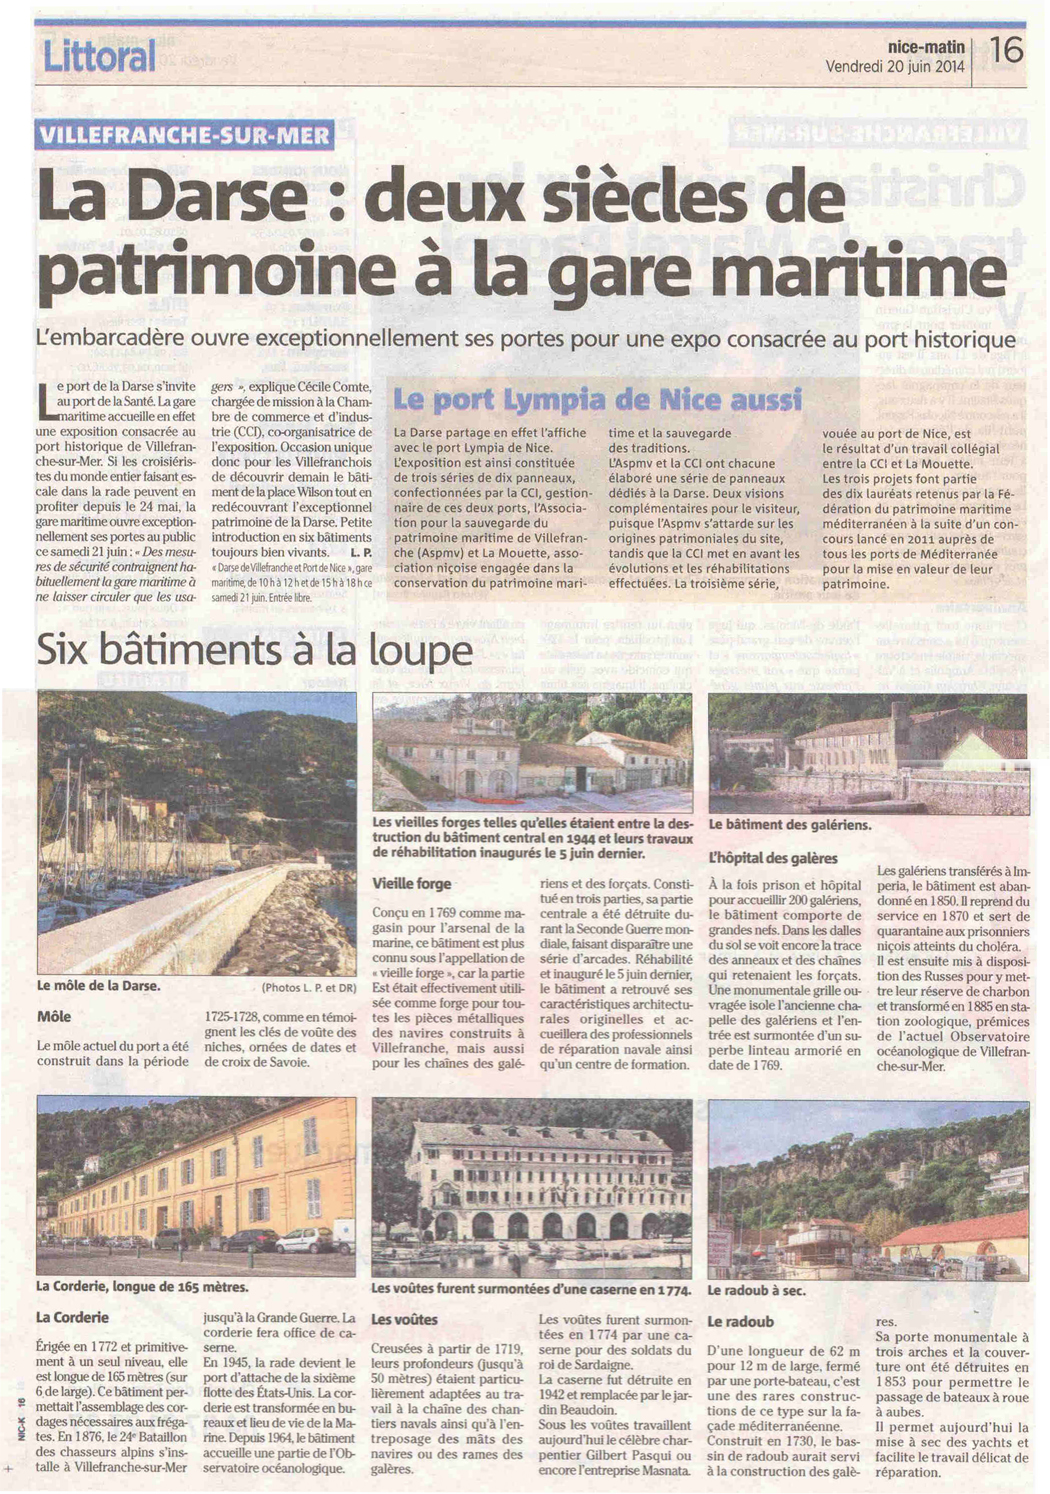 nice-matin 20 06 14 article darse